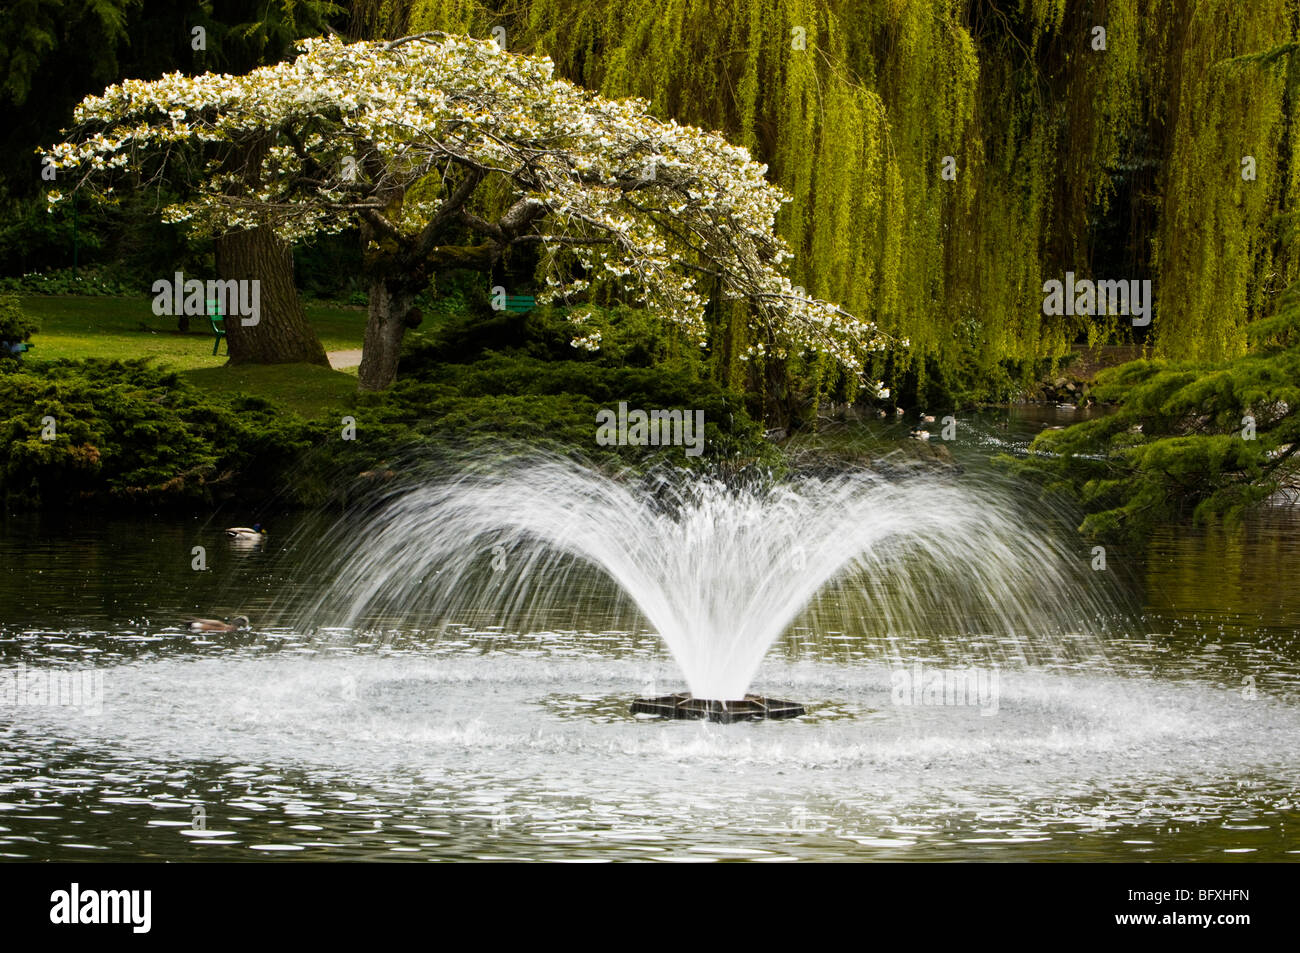 Japanese Cherry Tree And Fountain In Beacon Hill Park Pond Victoria Stock Photo Royalty Free